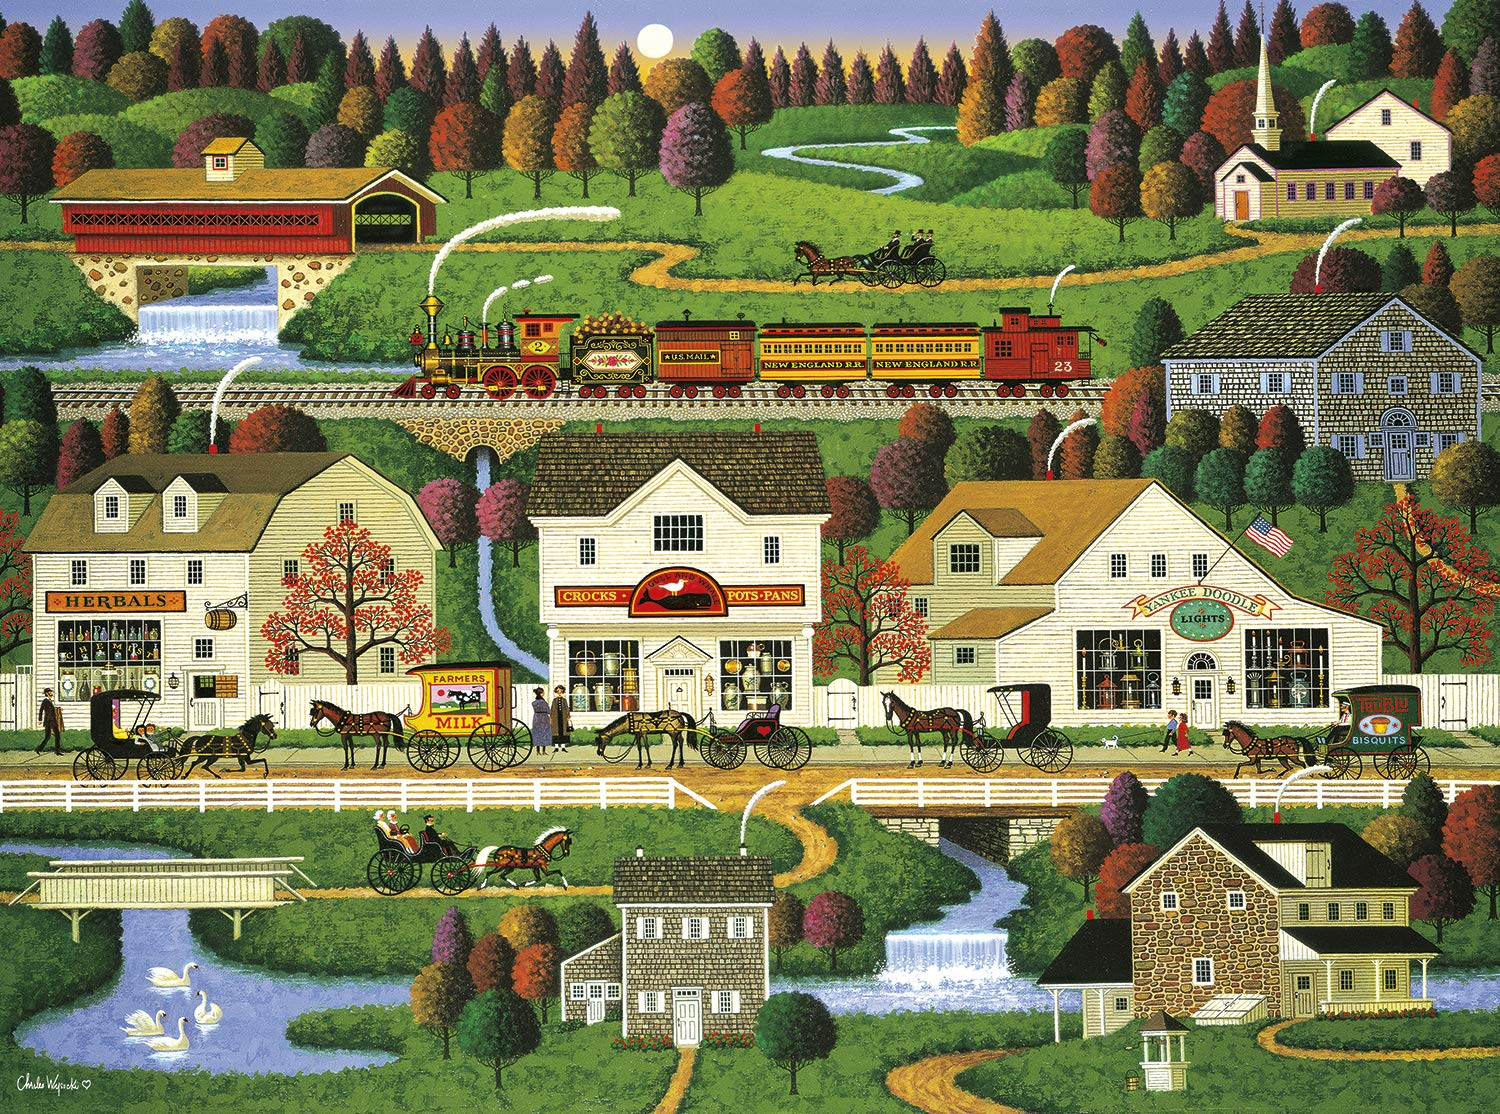 Buffalo Games Charles Wysocki - Yankee Wink Hollow - 1000 Piece Jigsaw Puzzle, Multi